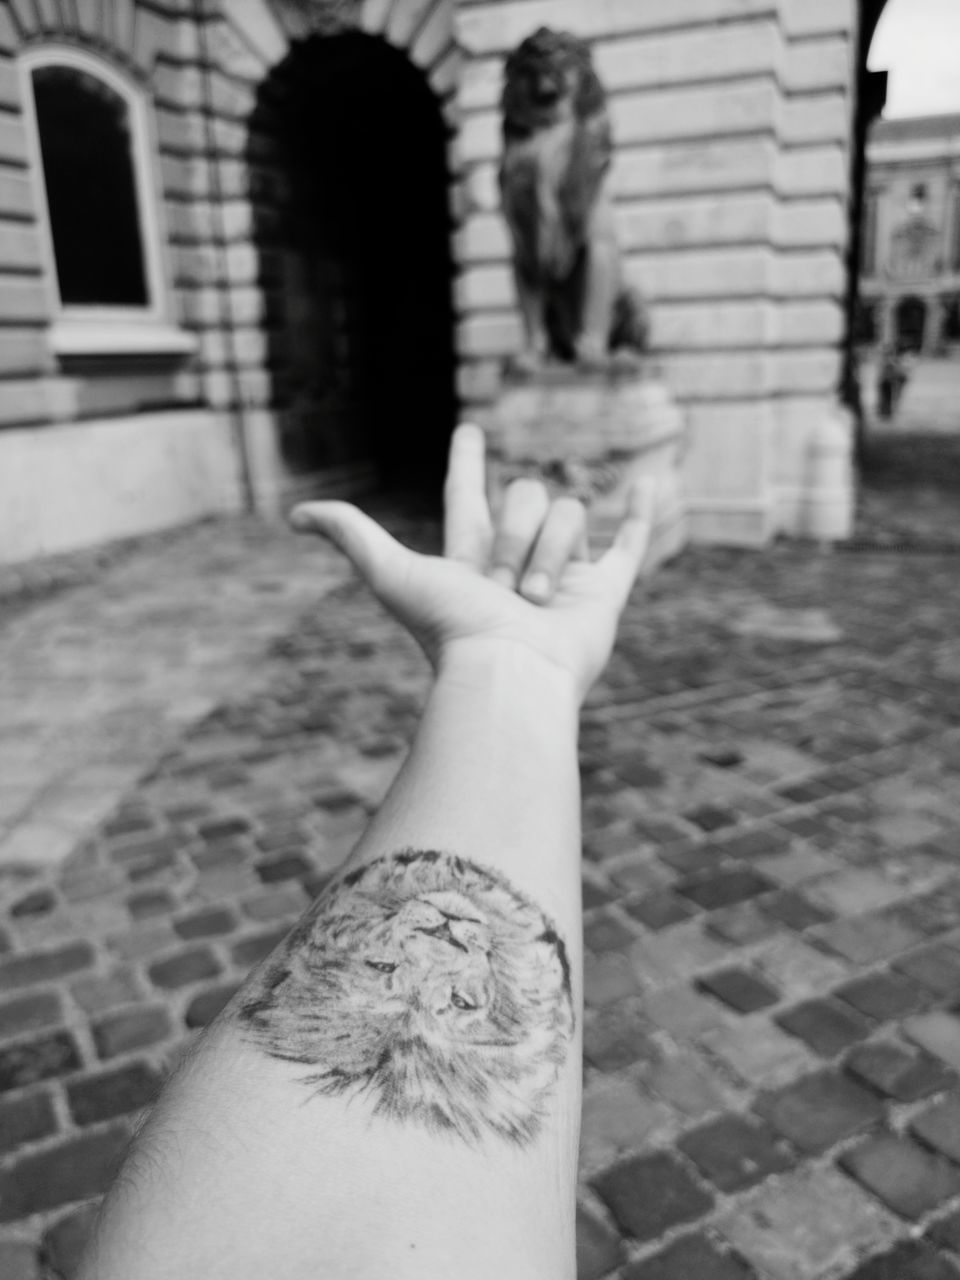 human body part, real people, architecture, lifestyles, hand, human hand, personal perspective, body part, focus on foreground, building exterior, people, tattoo, built structure, day, women, human finger, finger, adult, city, human limb, human arm